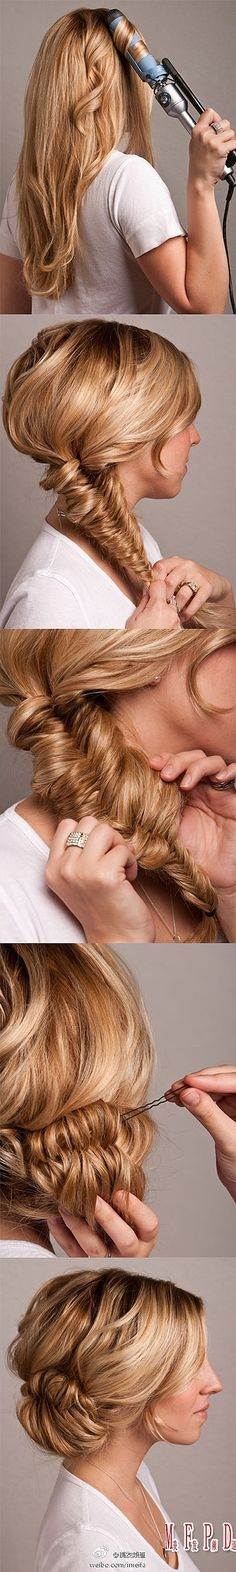 Fun hair up-do